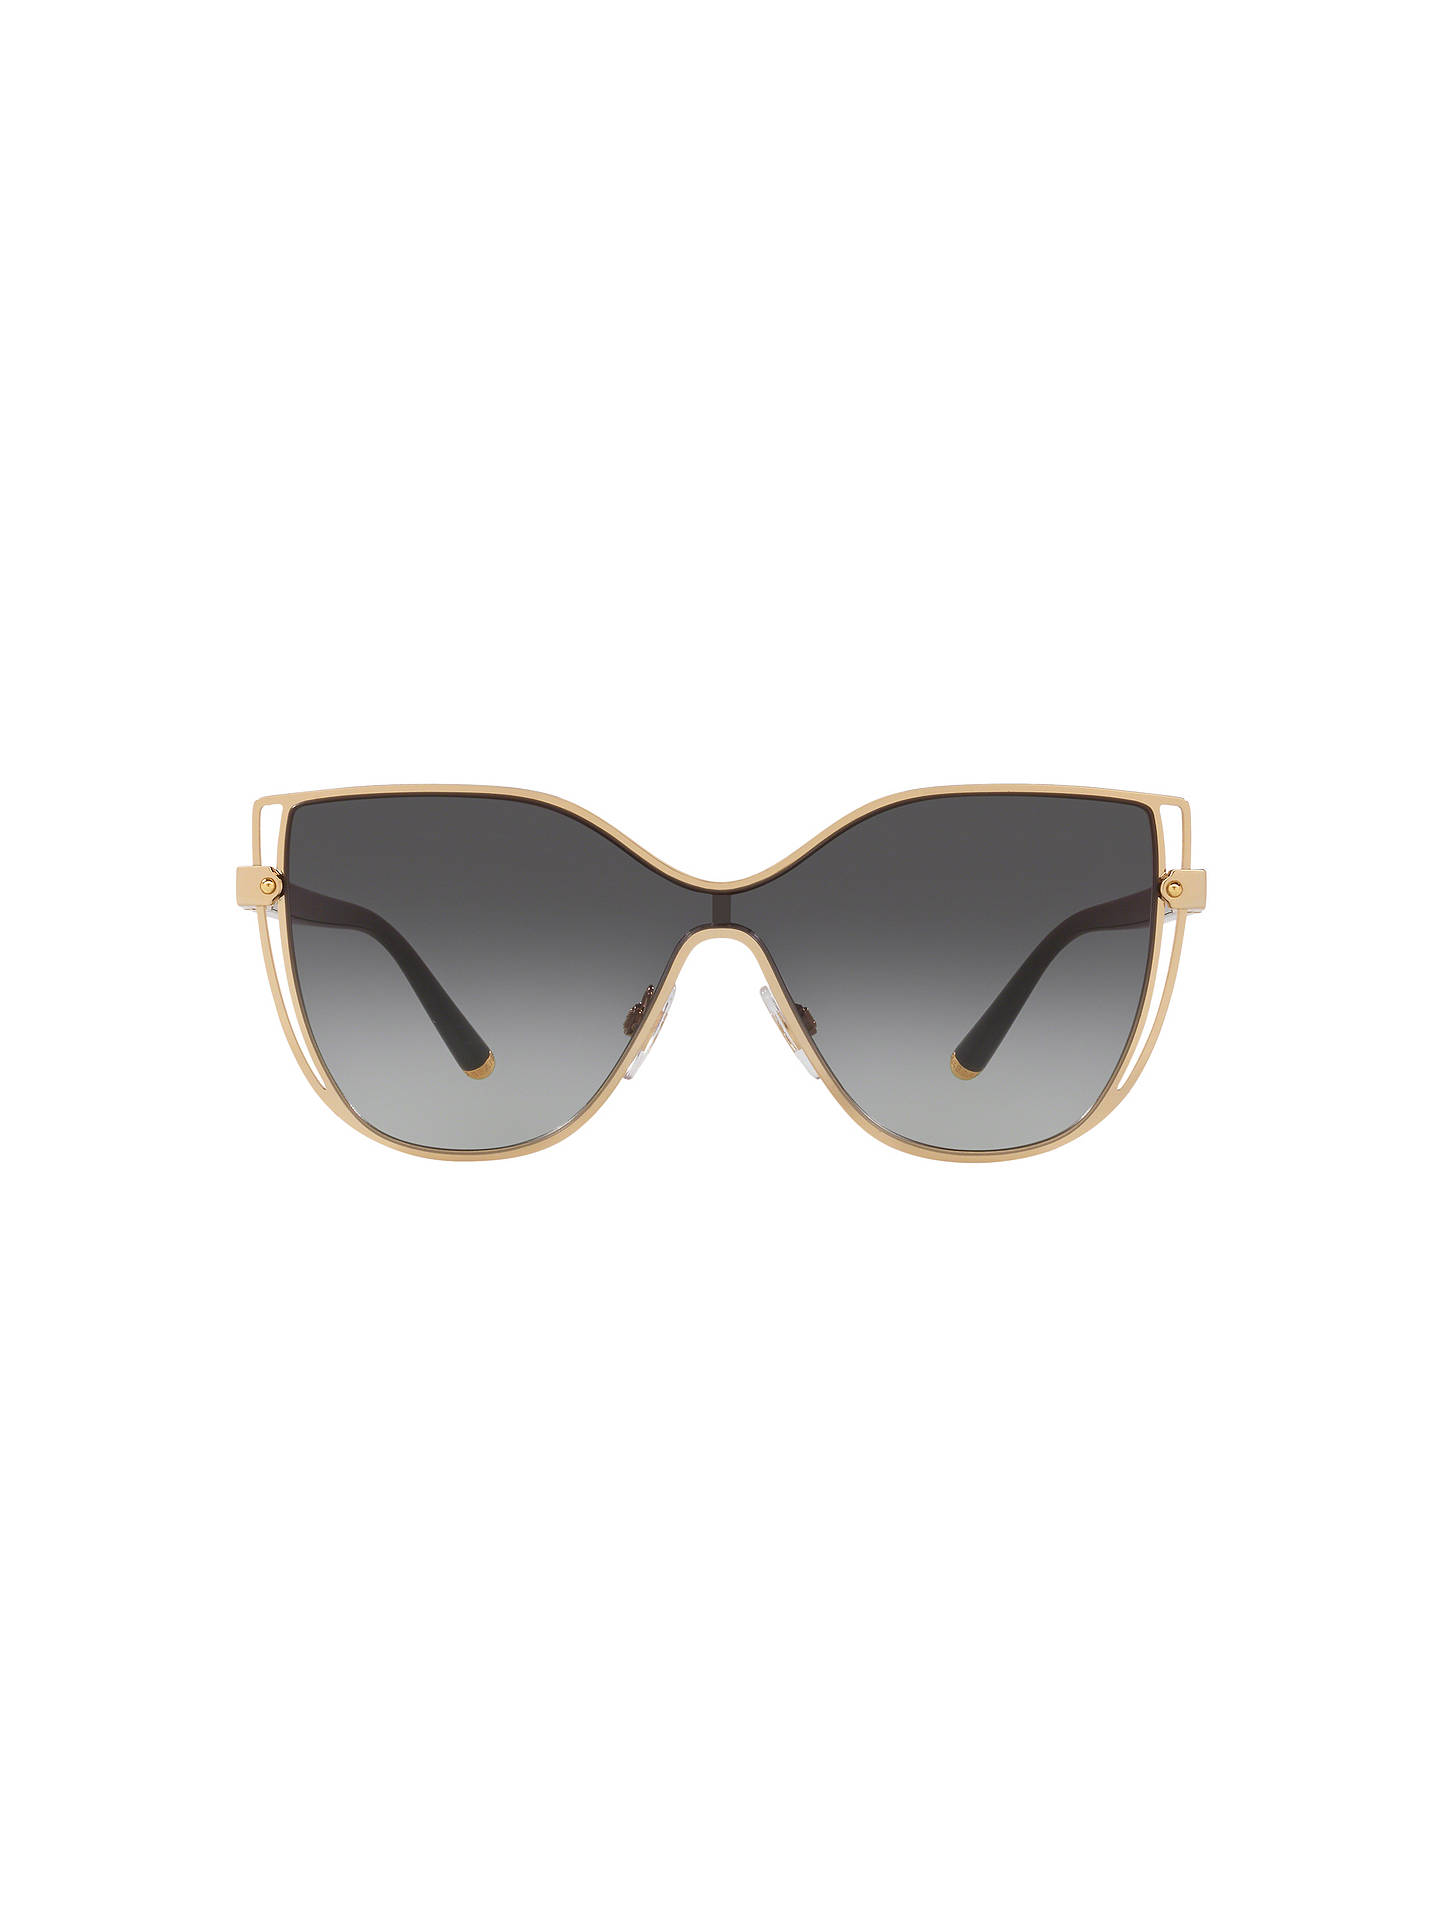 Buy Dolce & Gabbana DG2236 Women's Butterfly Sunglasses, Gold/Grey Gradient Online at johnlewis.com